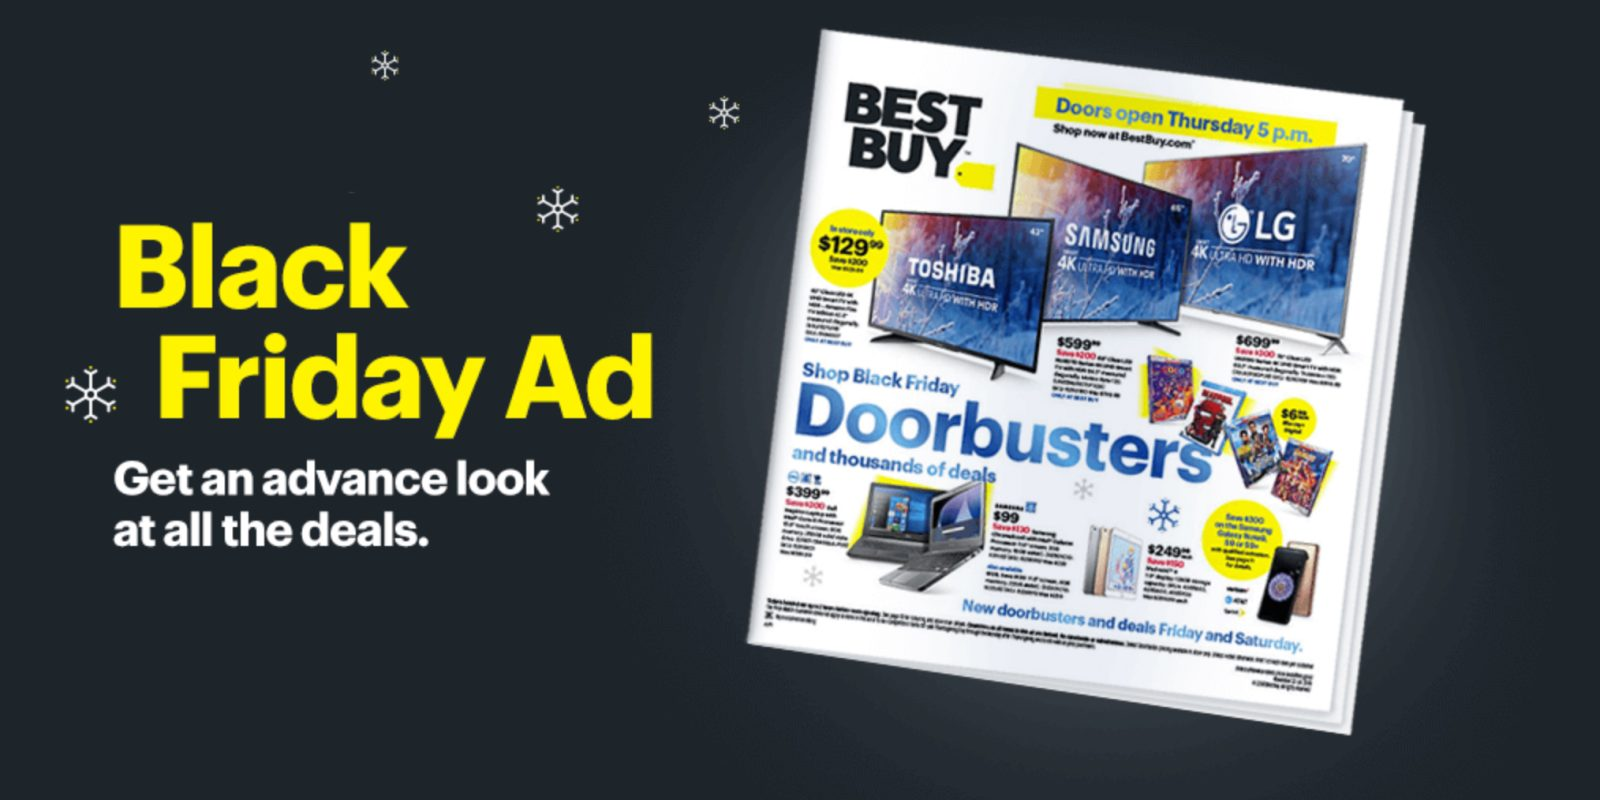 47d0b9cce870a Best Buy Black Friday ad delivers this year's top Apple deals, gaming  consoles, doorbusters, more